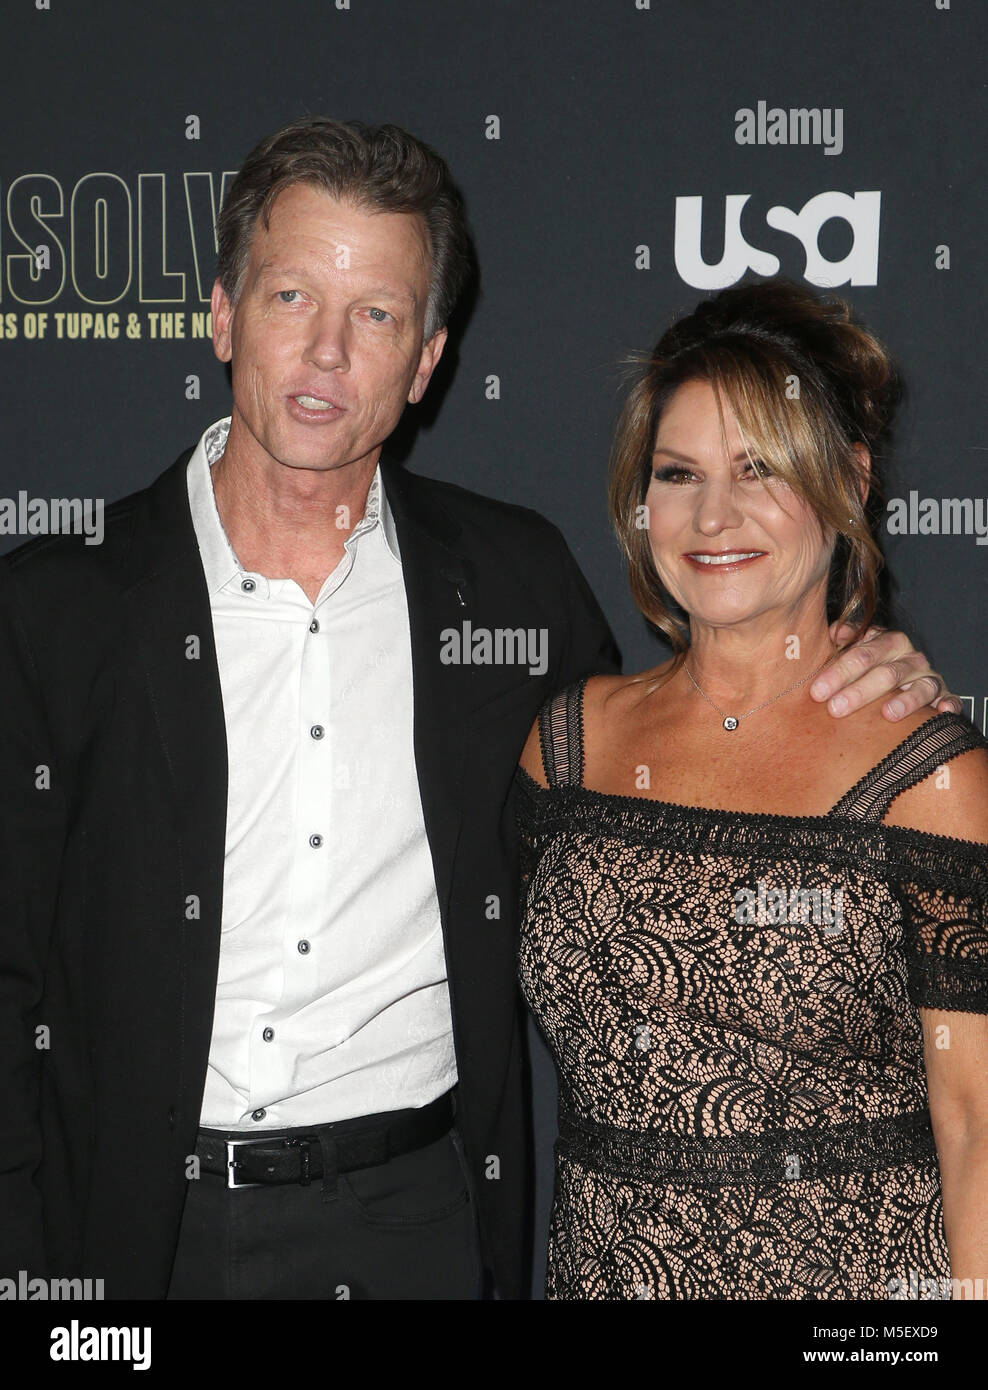 HOLLYWOOD, CA - FEBRUARY 22: Greg Kading, Guest, at Premiere